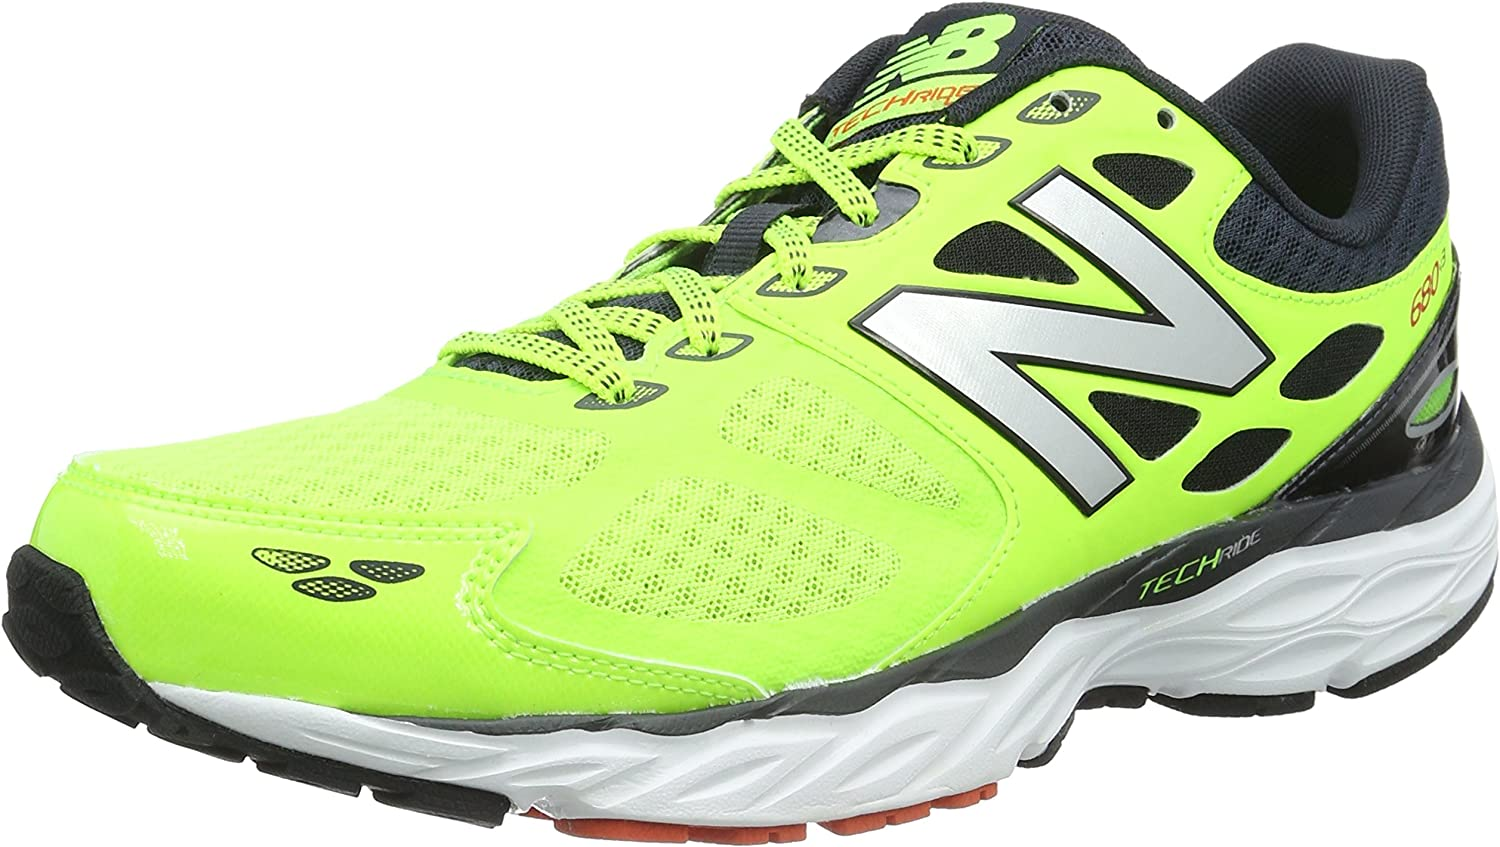 New Balance Neutral - Zapatillas de Running: Amazon.es: Zapatos y complementos